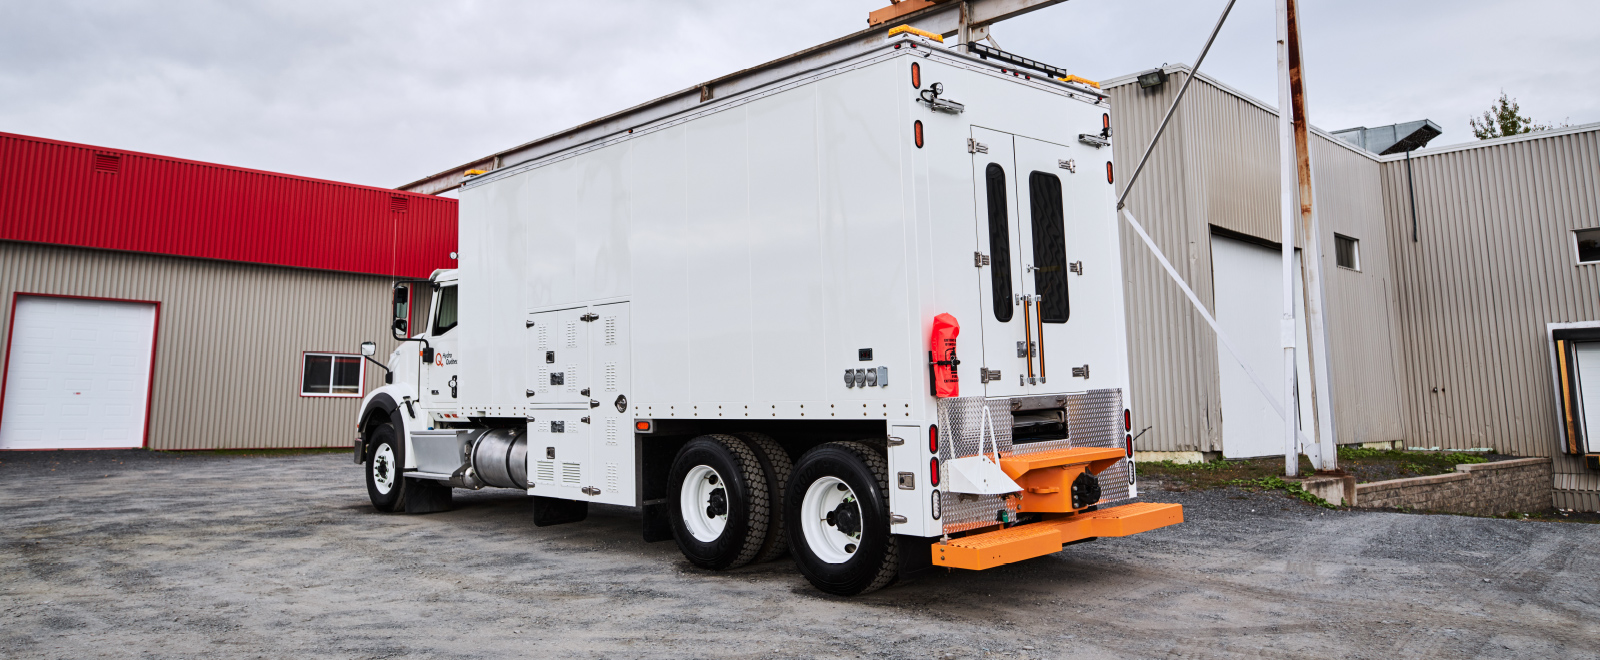 Utility Trucks & Trailers Outfitted to Meet Your Changing Needs